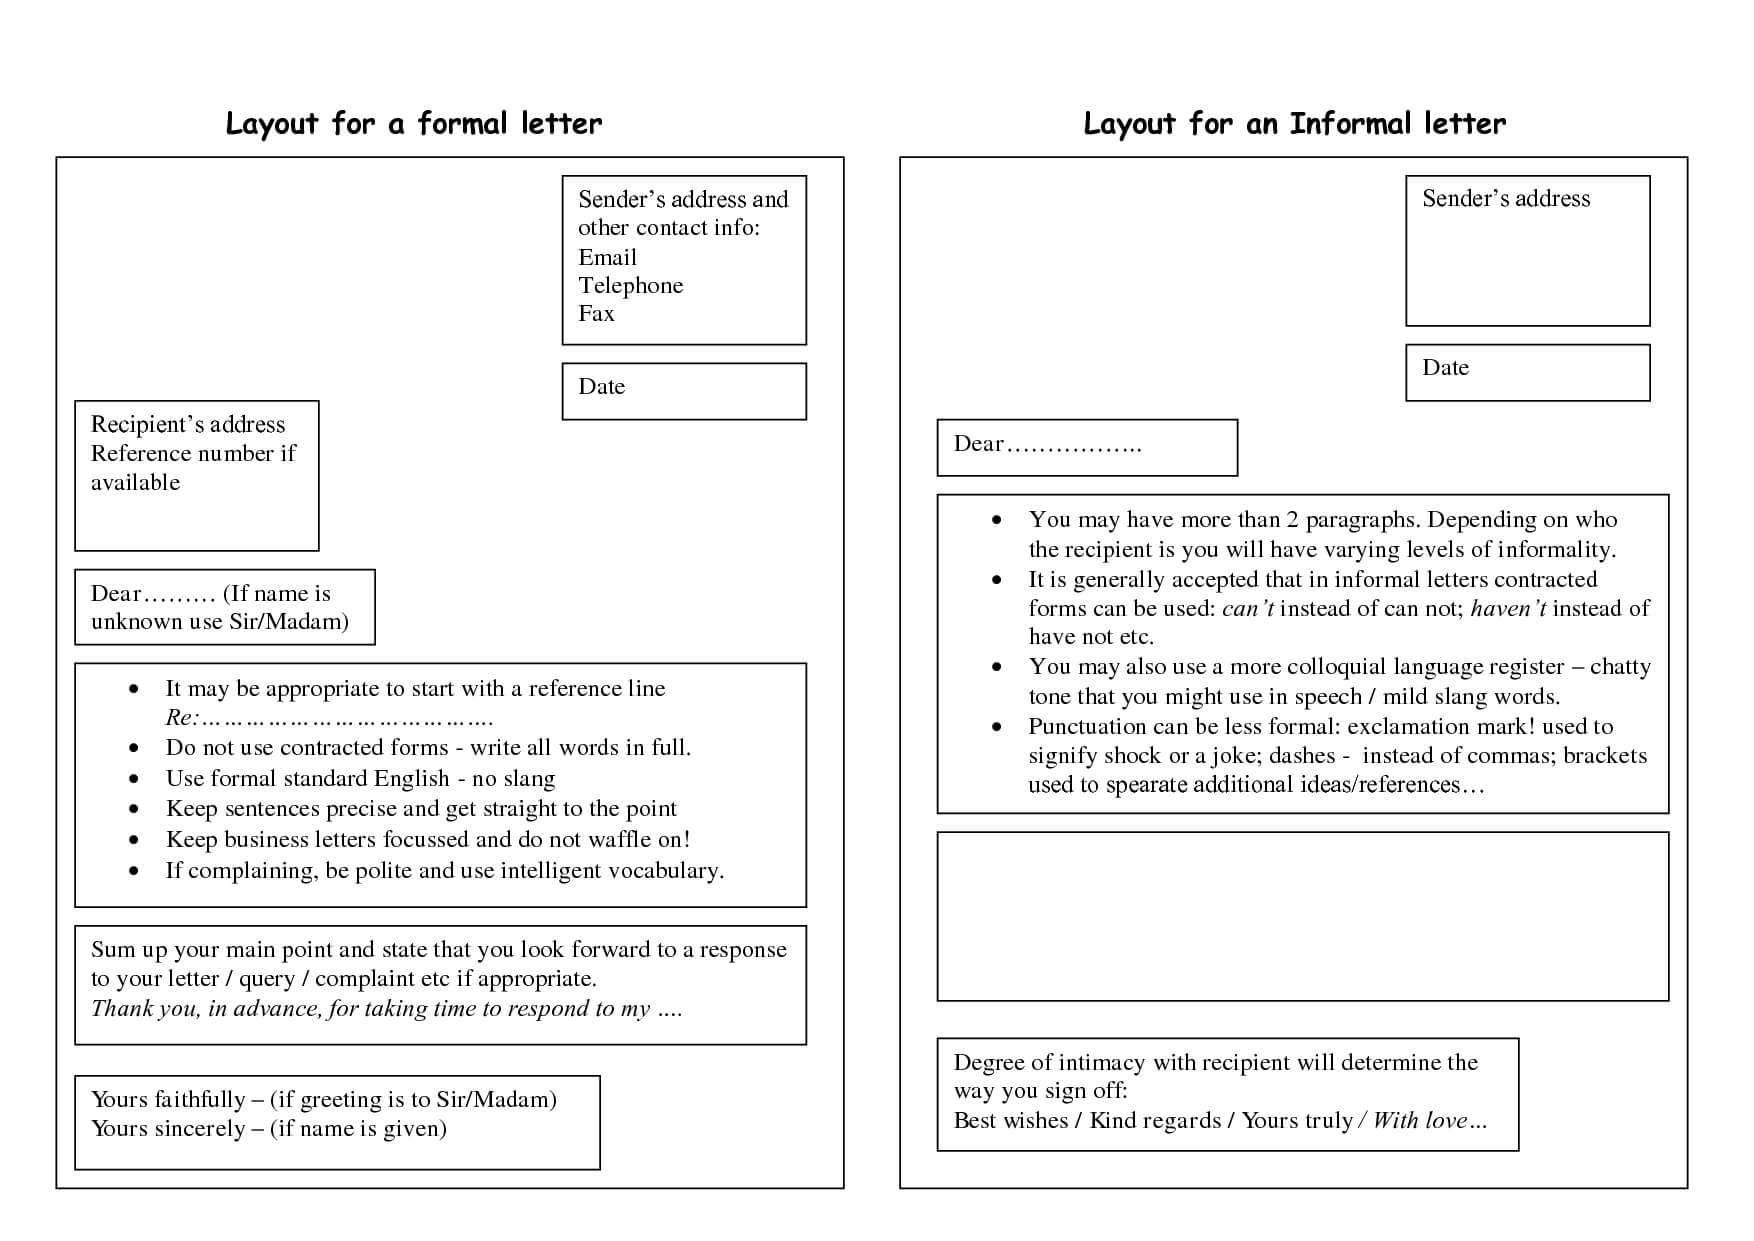 Layout For A Formal Letter Business Letter Layout Business With Report Writing Template Ks1